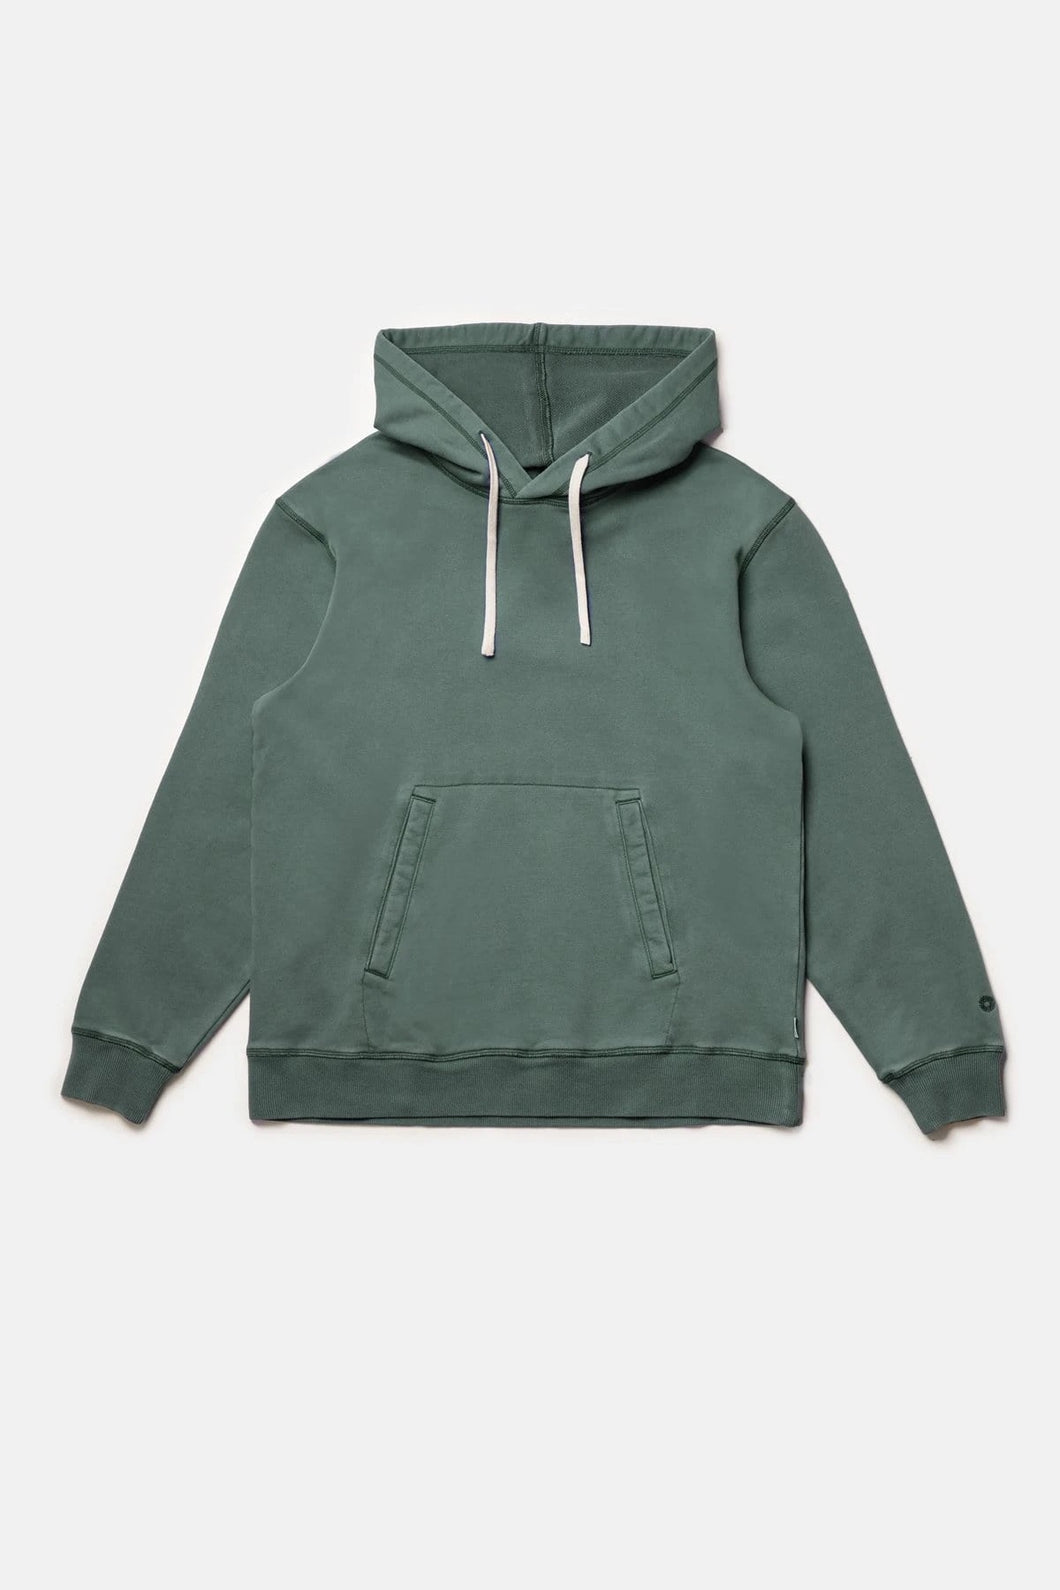 RHYTHM UNI FLEECE HOOD LIGHT TEAL